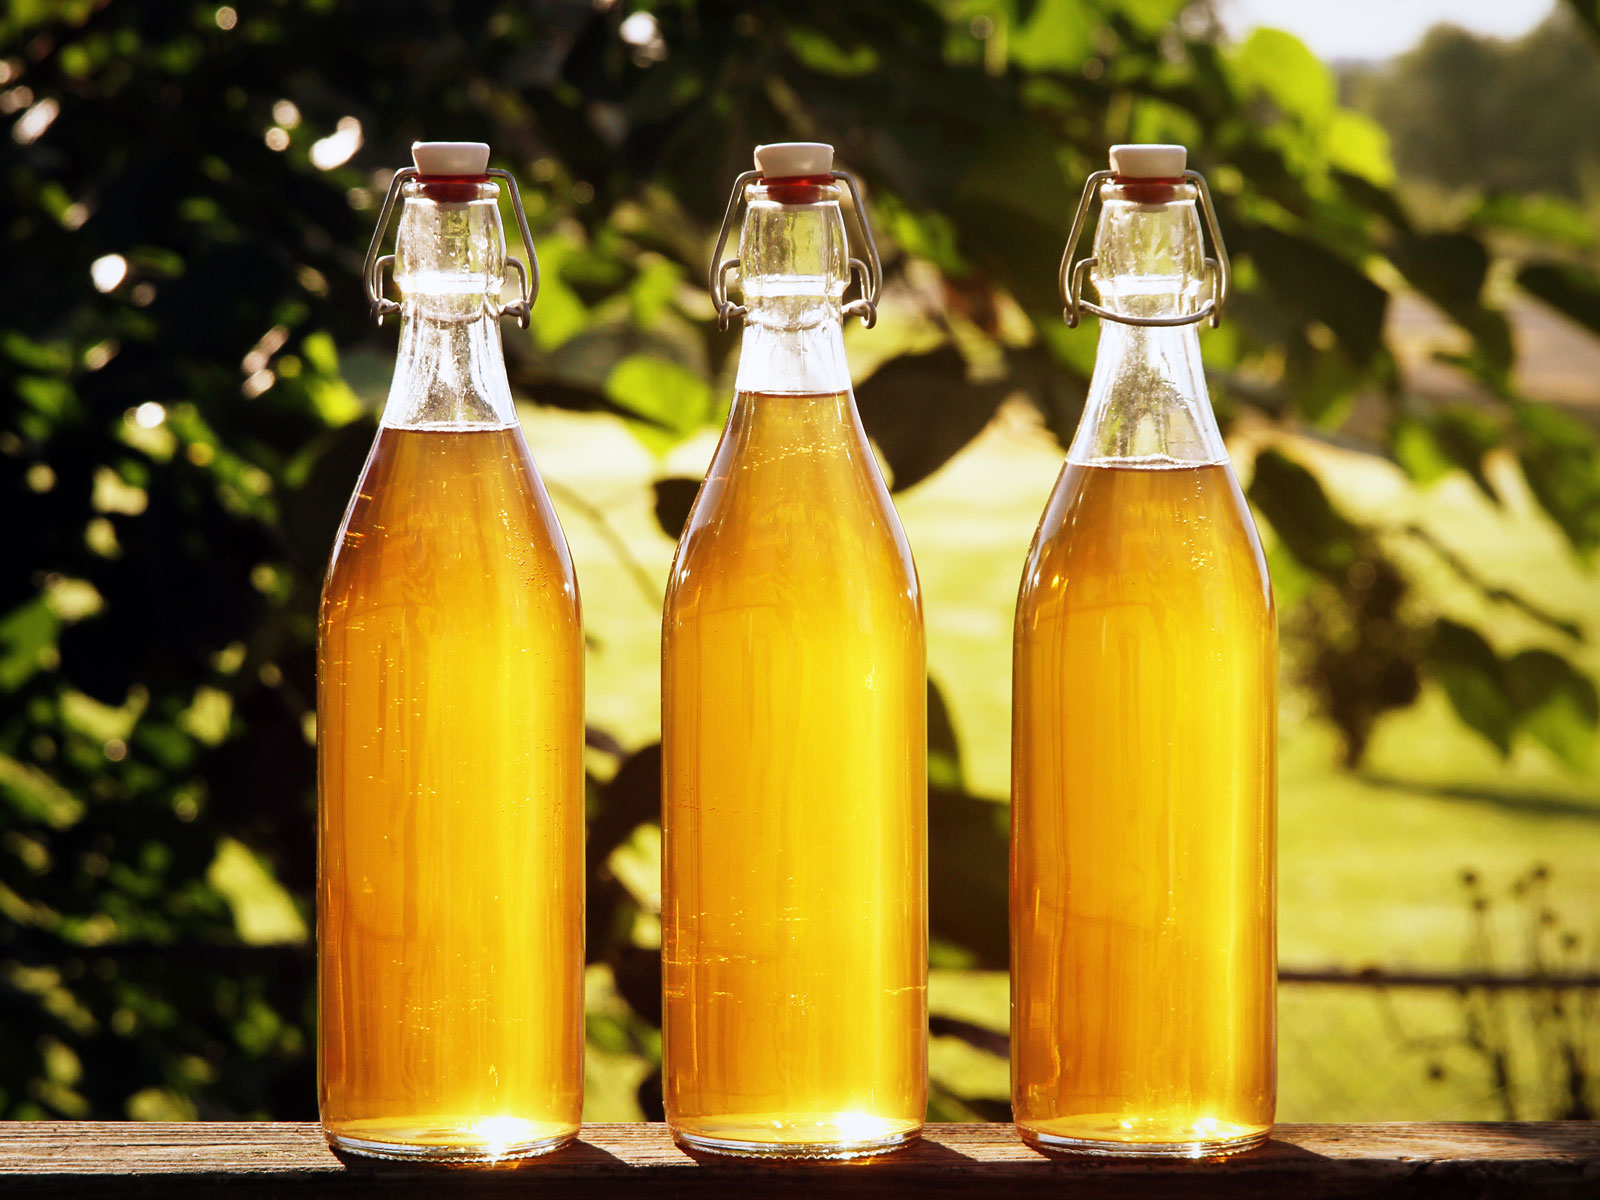 foodandwine.com - Mike Pomranz - New York Adds Mead to Its Ongoing Craft Beverage Booster Program